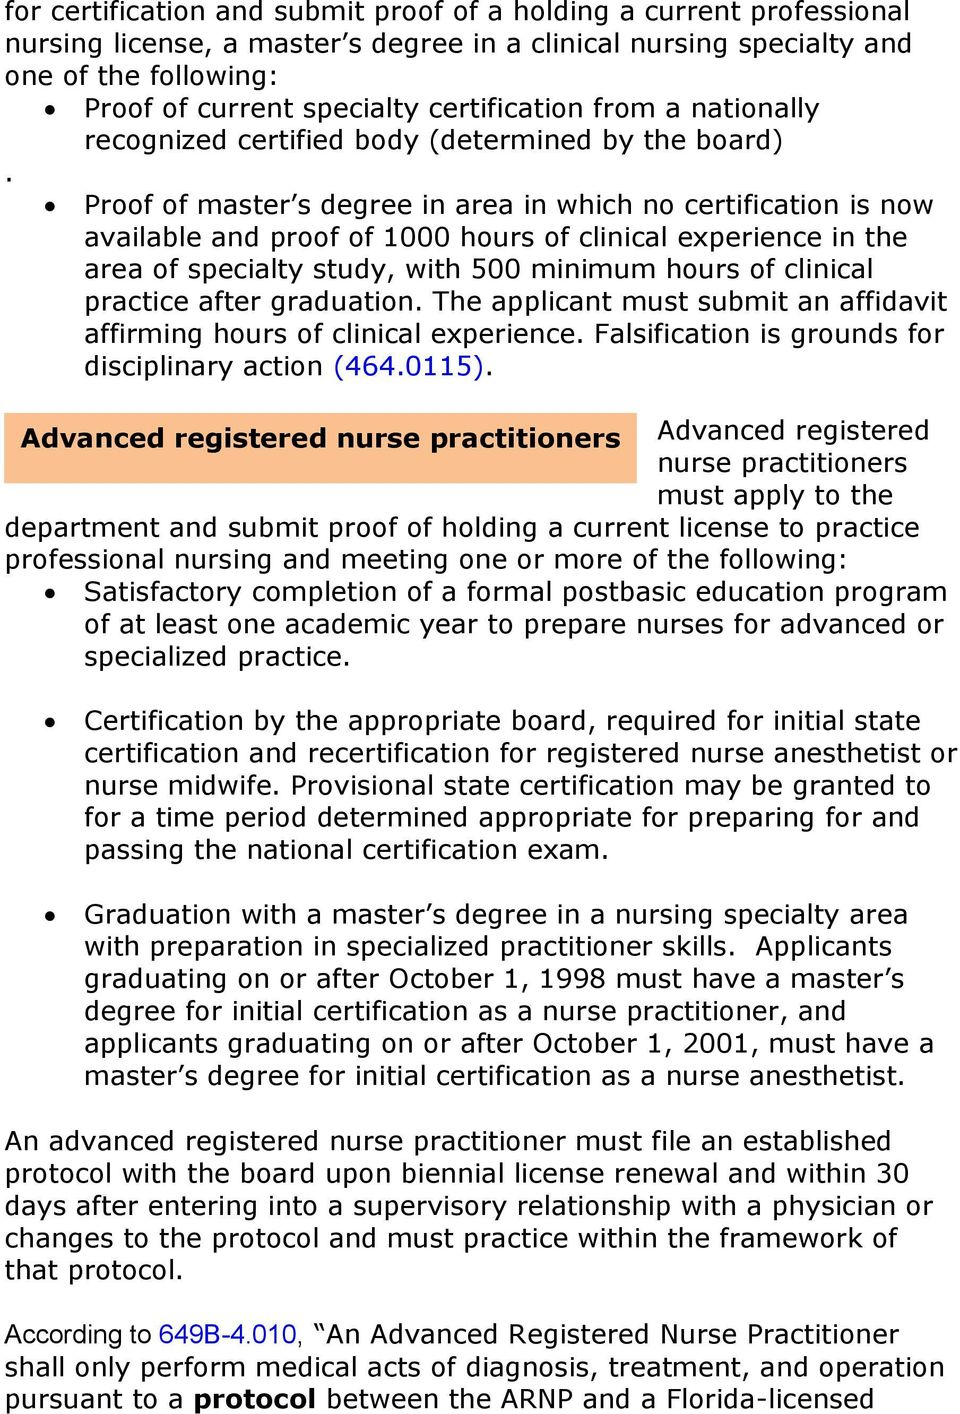 Proof of master s degree in area in which no certification is now available and proof of 1000 hours of clinical experience in the area of specialty study, with 500 minimum hours of clinical practice